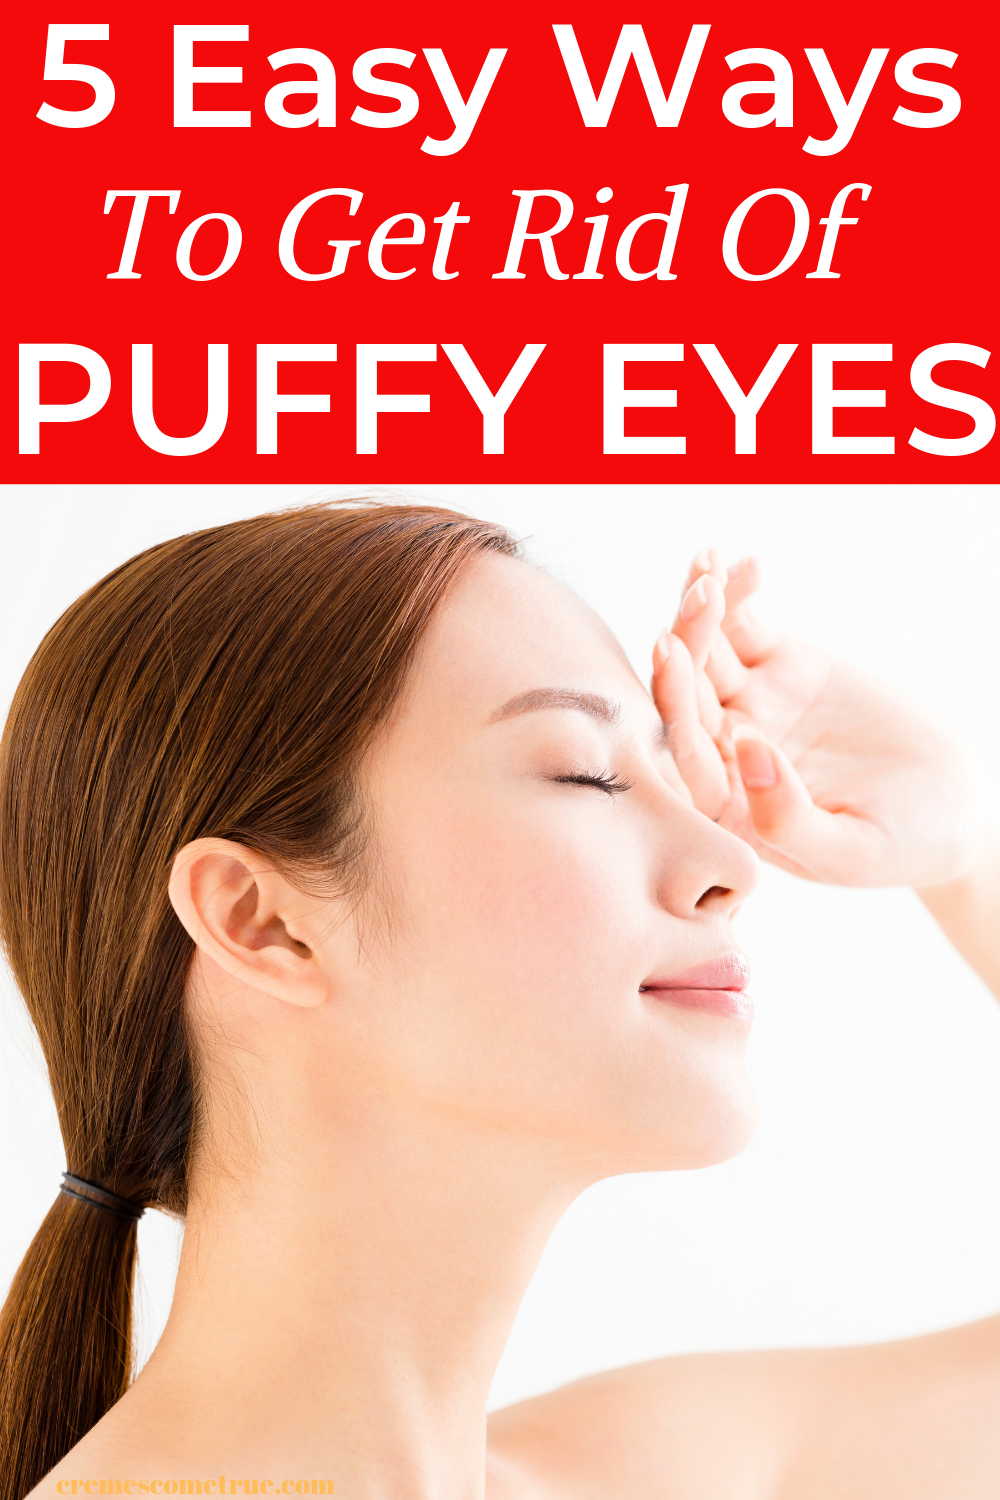 How To Get Rid Of Puffy Eyes 5 Easy Ways To DePuff